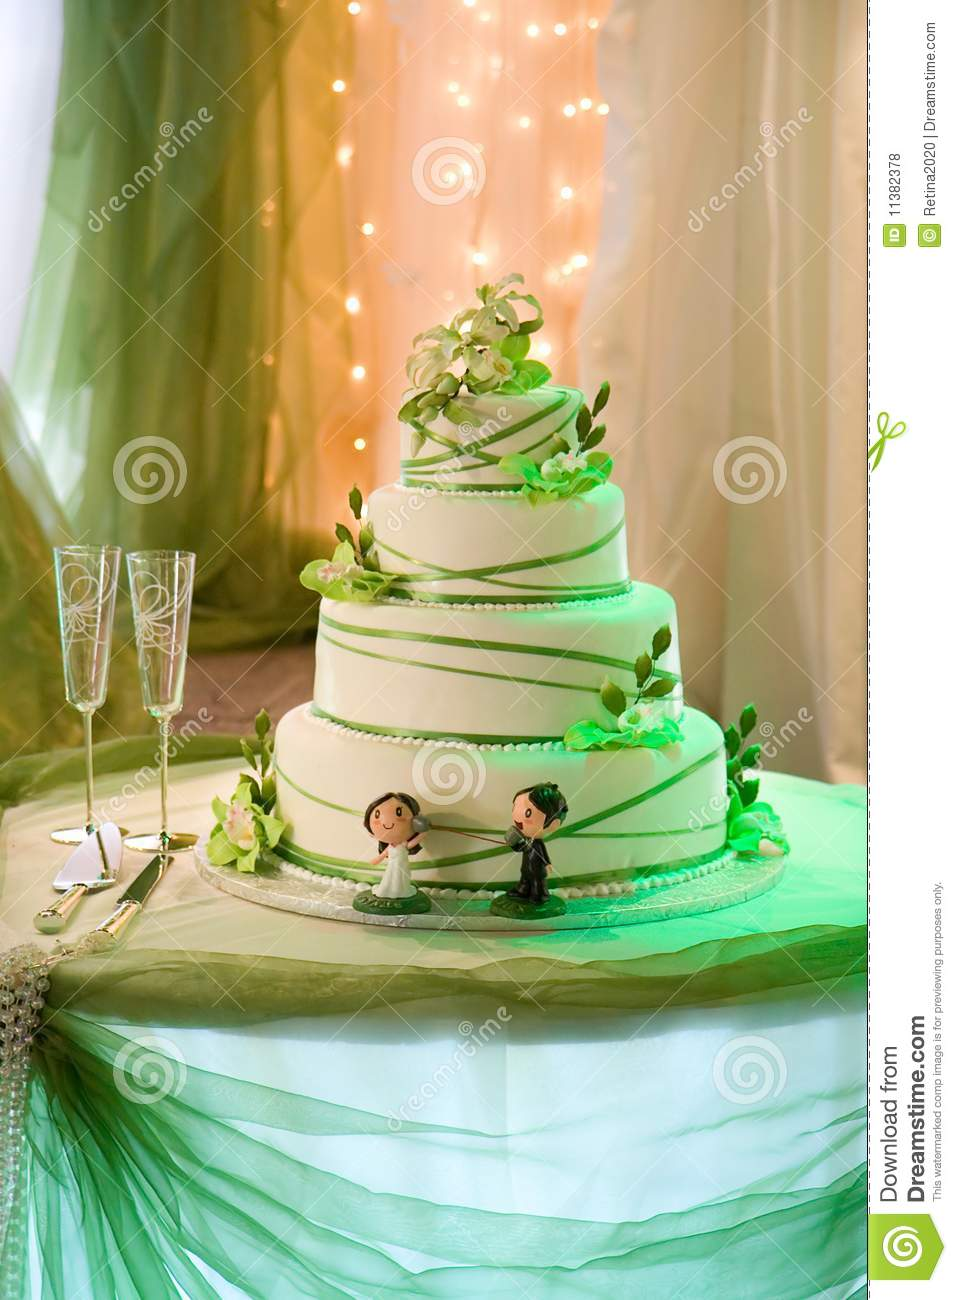 Wedding Cake With Edible Cream Orchids Stock Photo - Image of ...